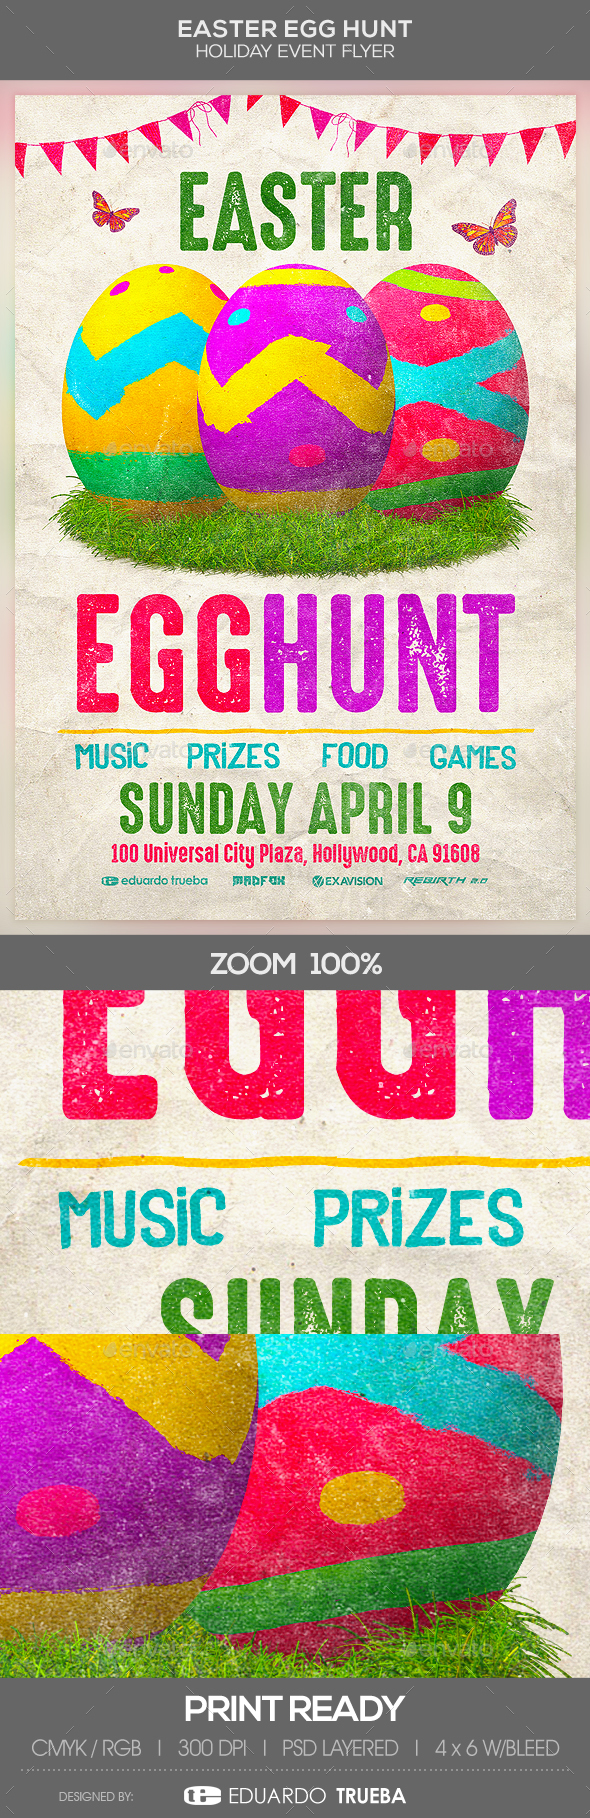 Easter Egg Hunt Holiday Event Flyer - Events Flyers